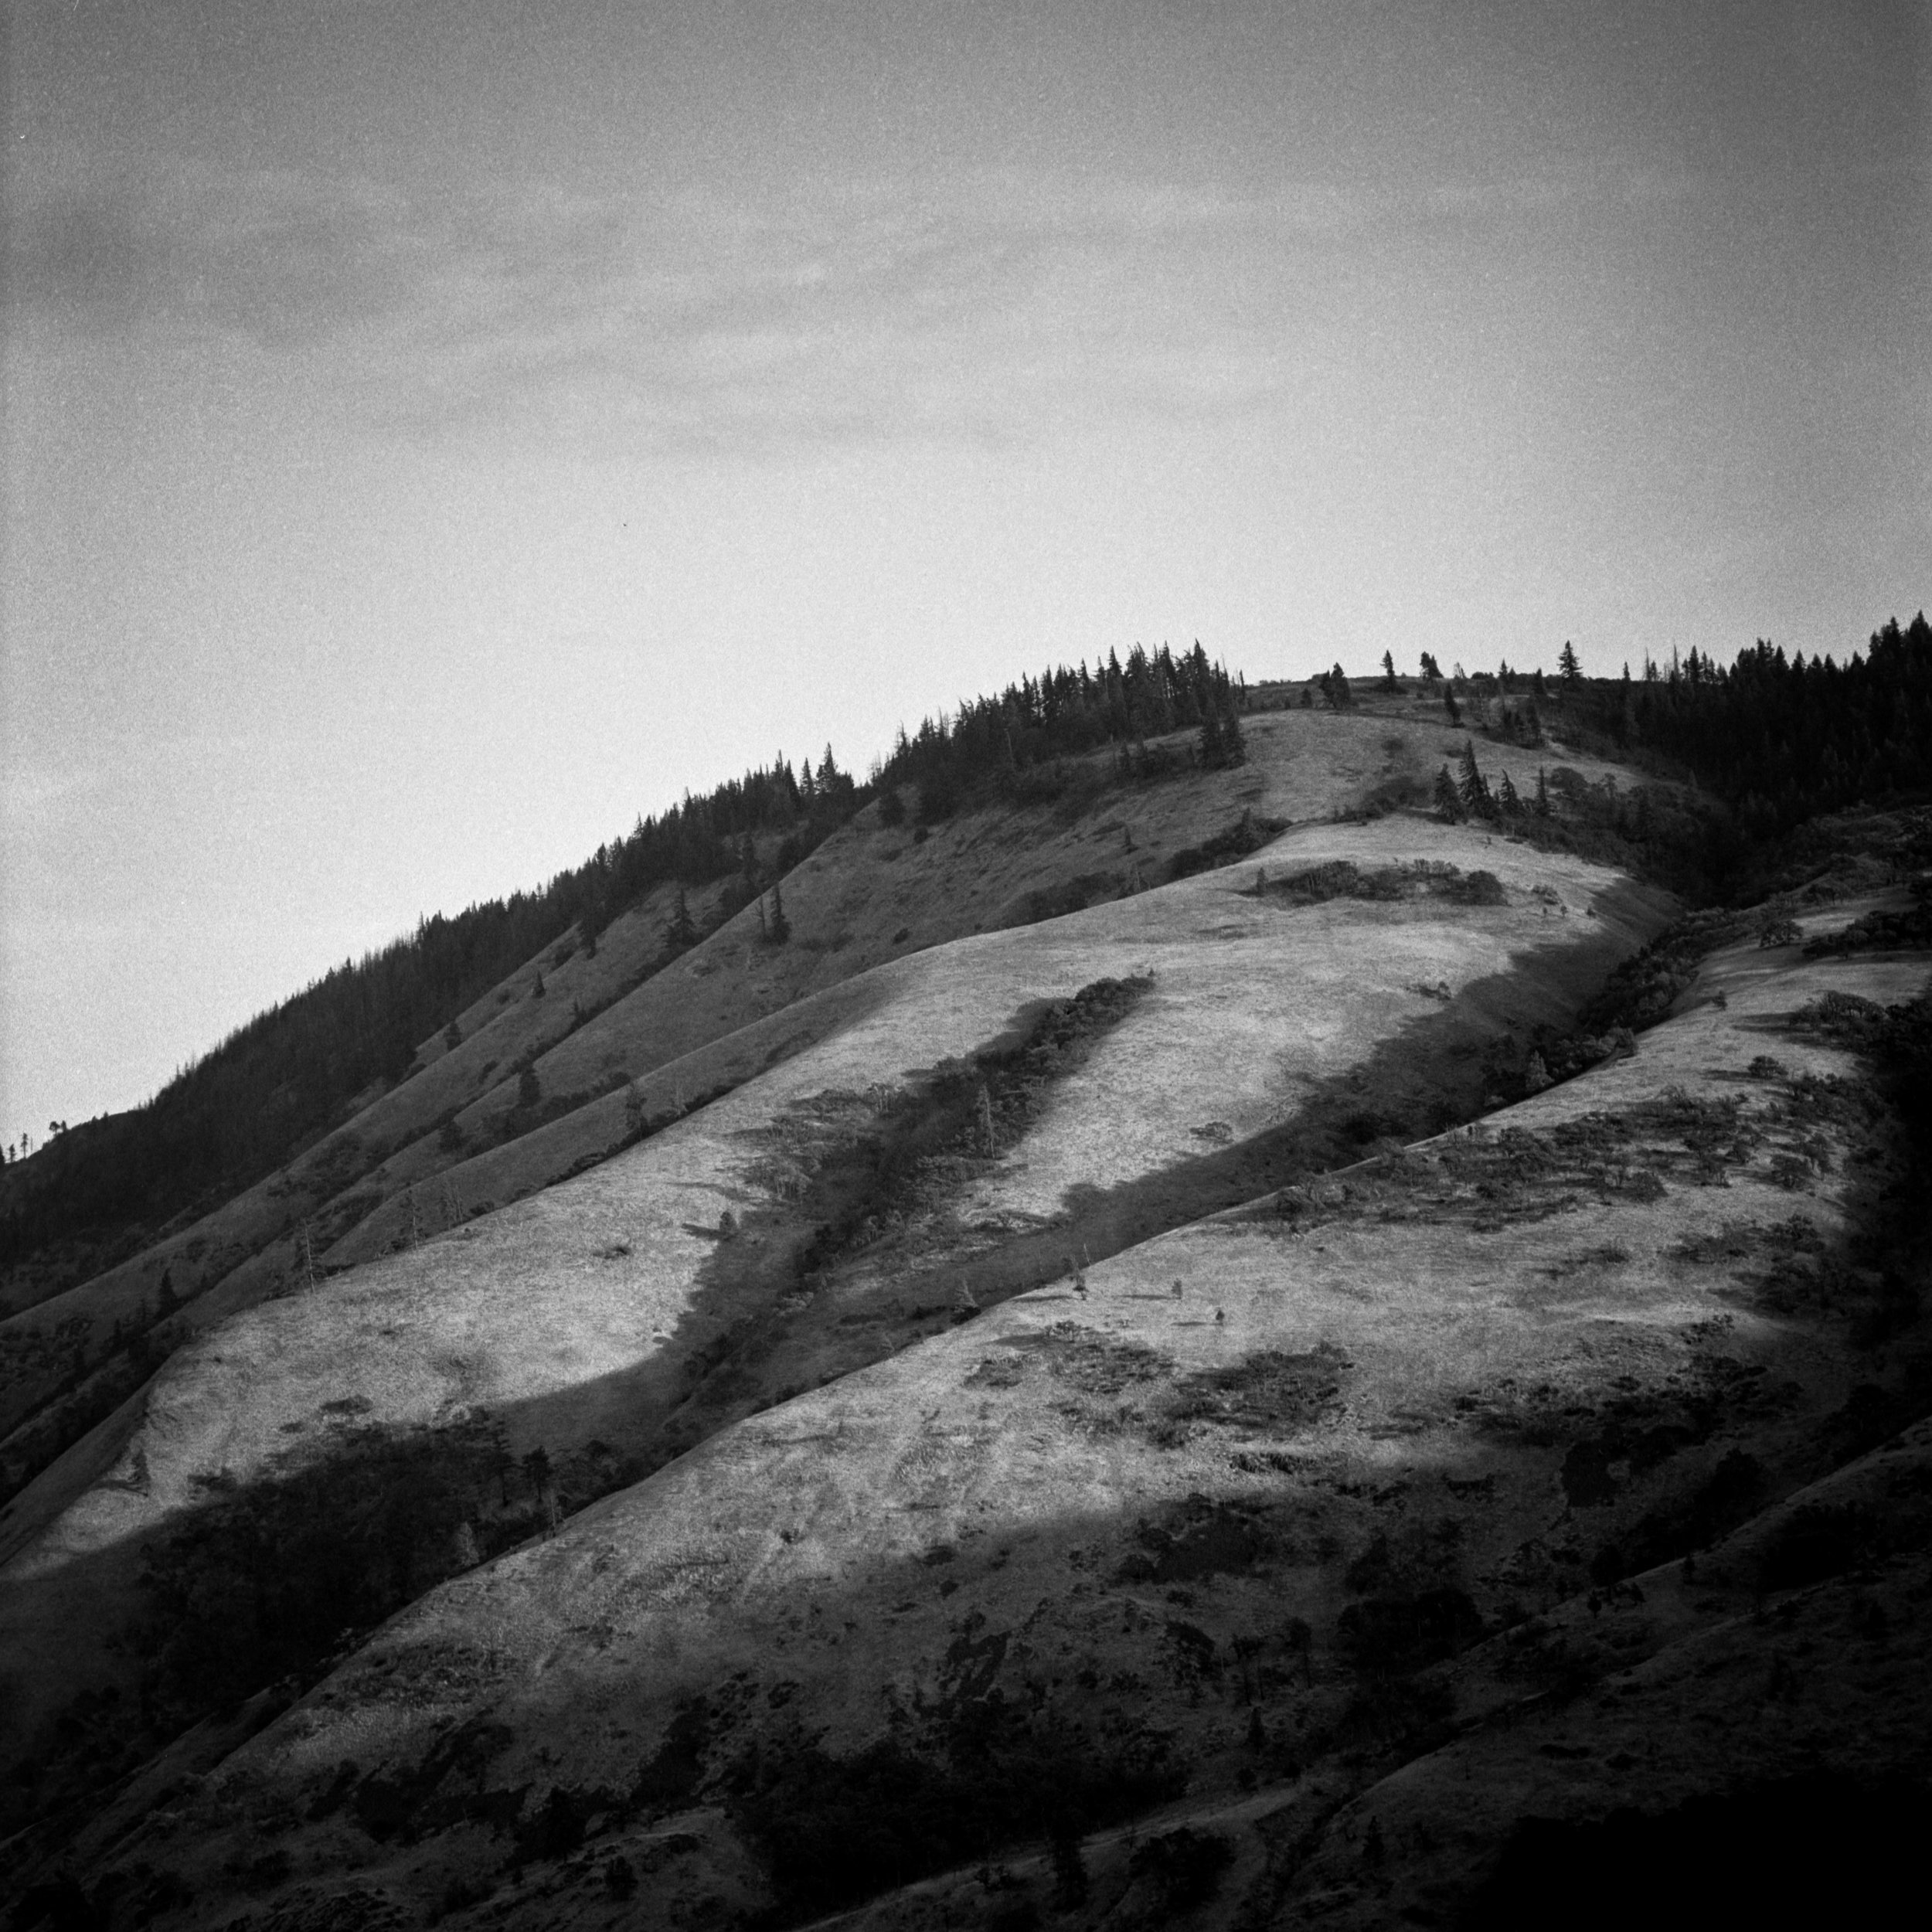 The hills of the Eastern Gorge, The Dalles, September 2017